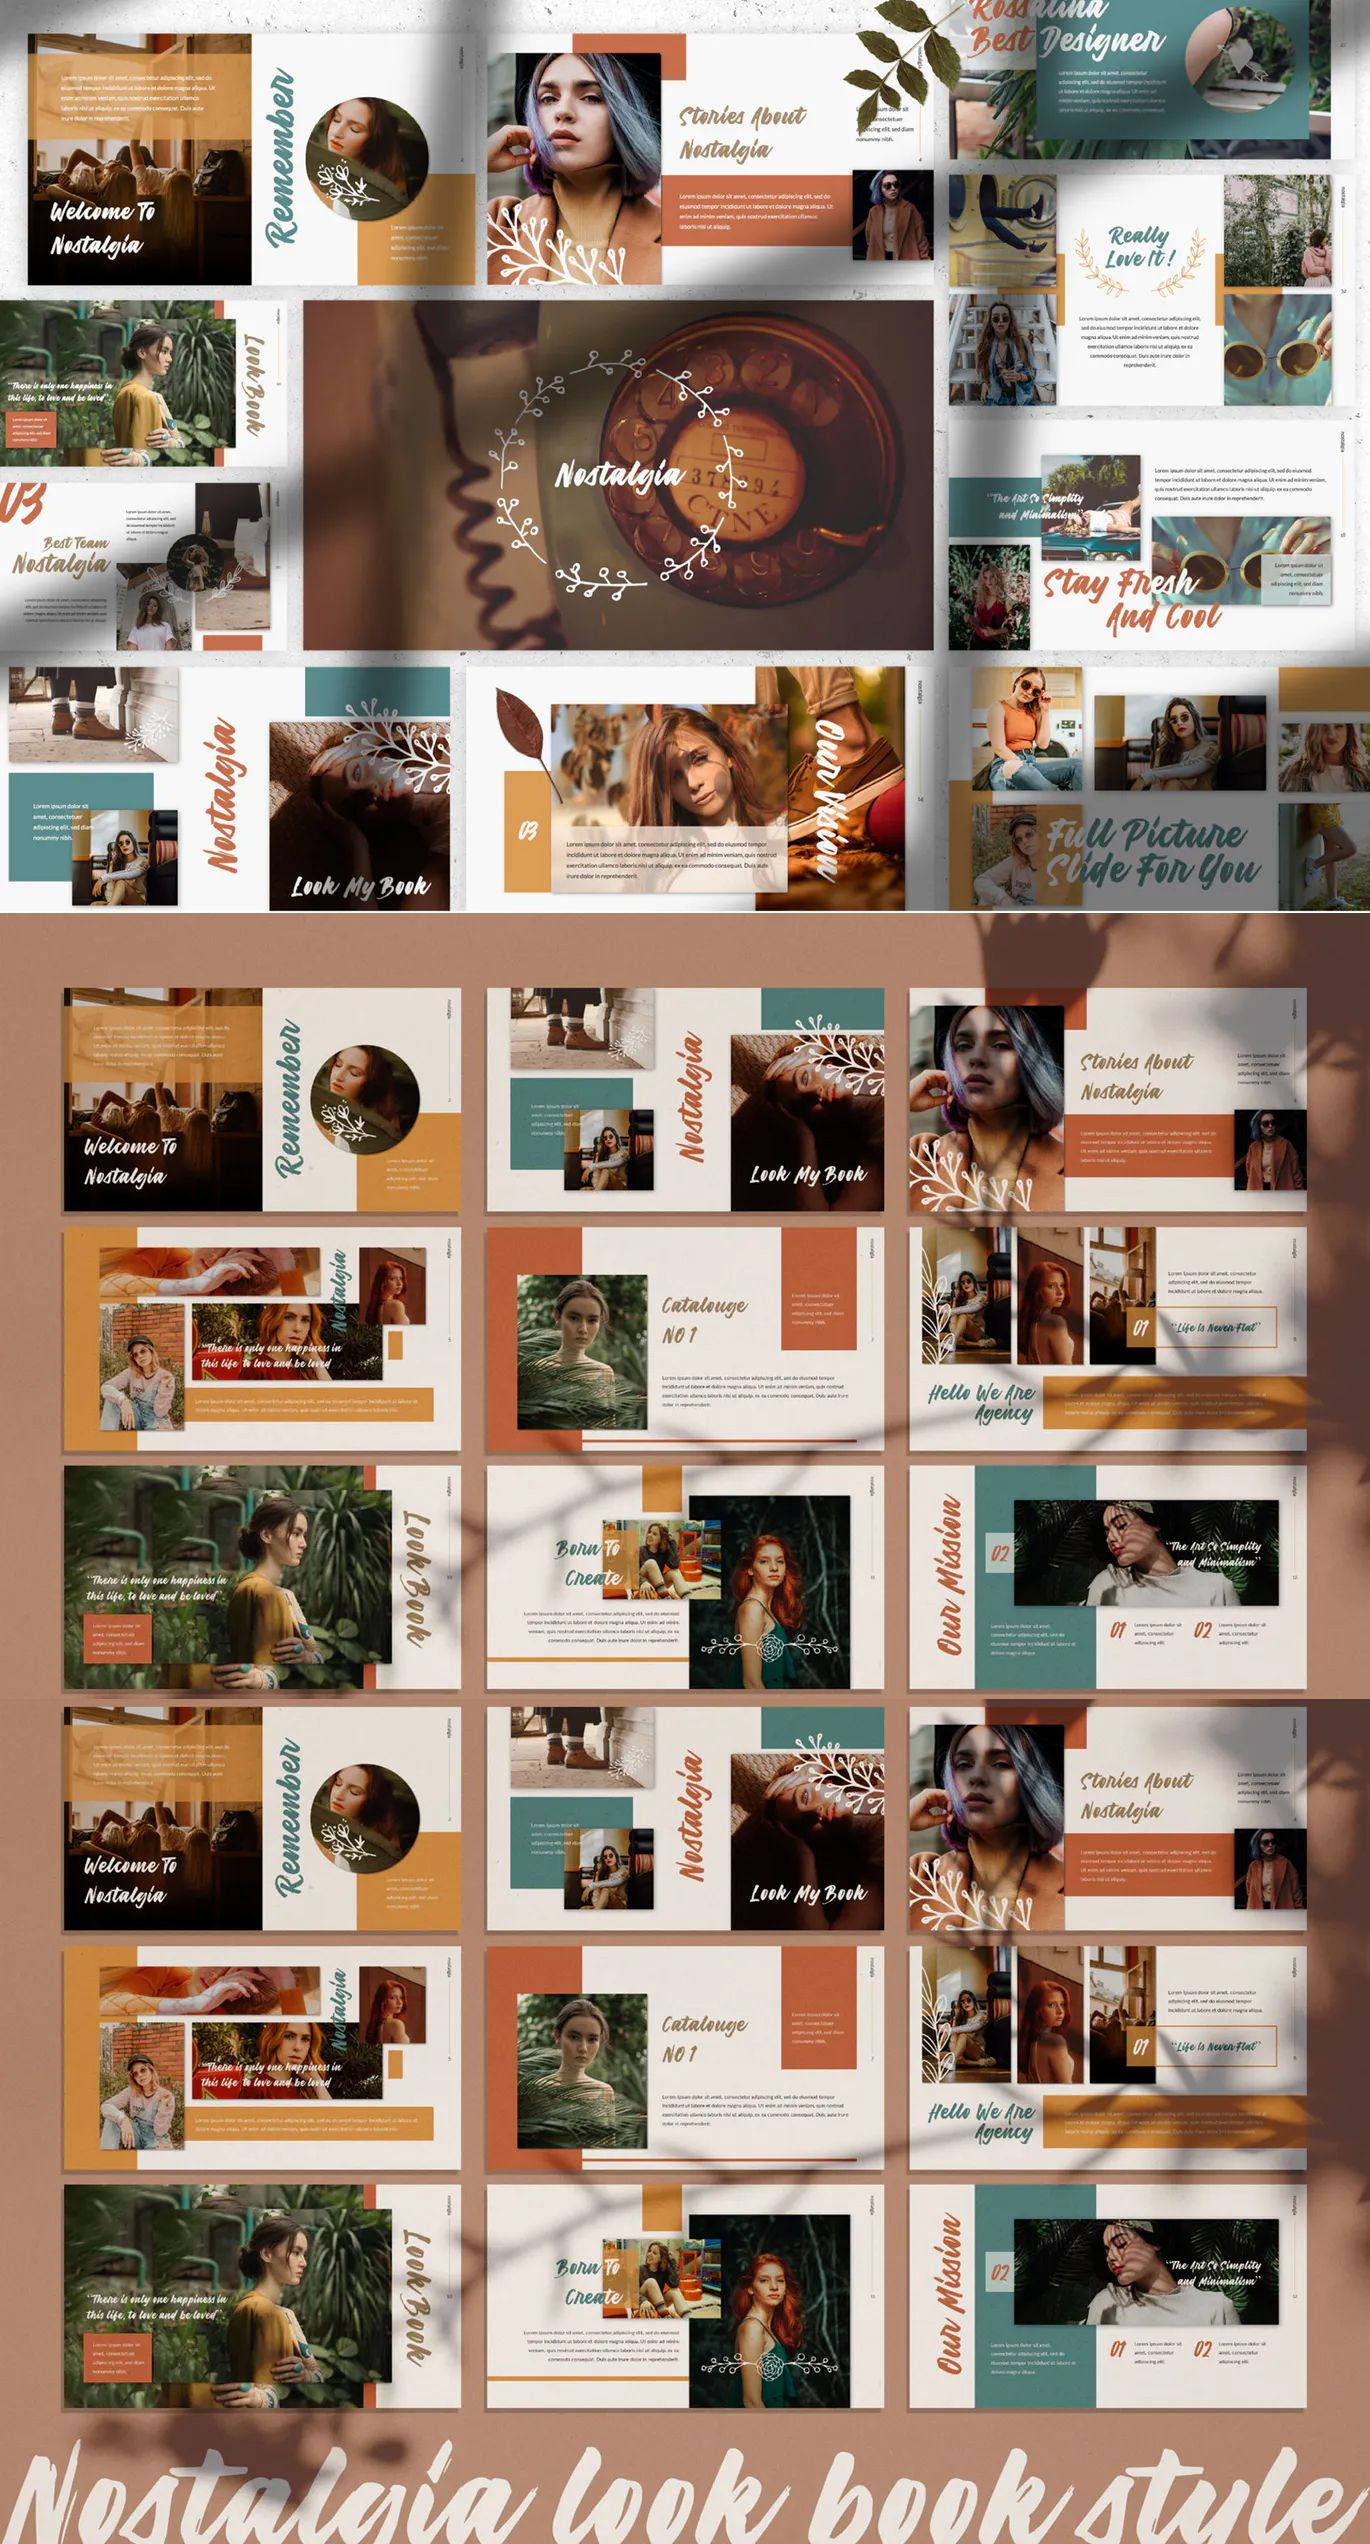 Nostalgia Powerpoint Presentation Template